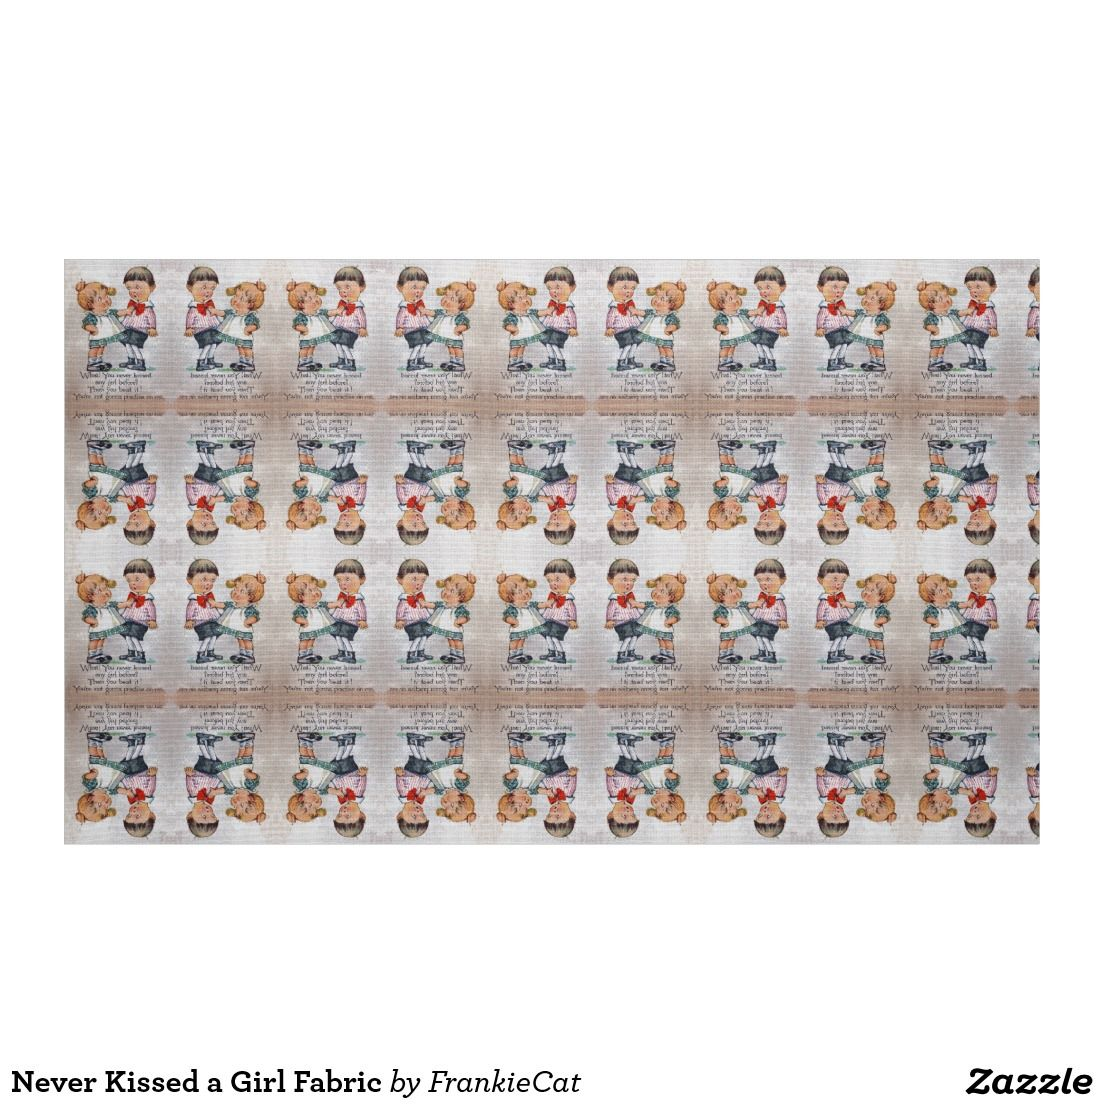 Never Kissed a Girl Fabric